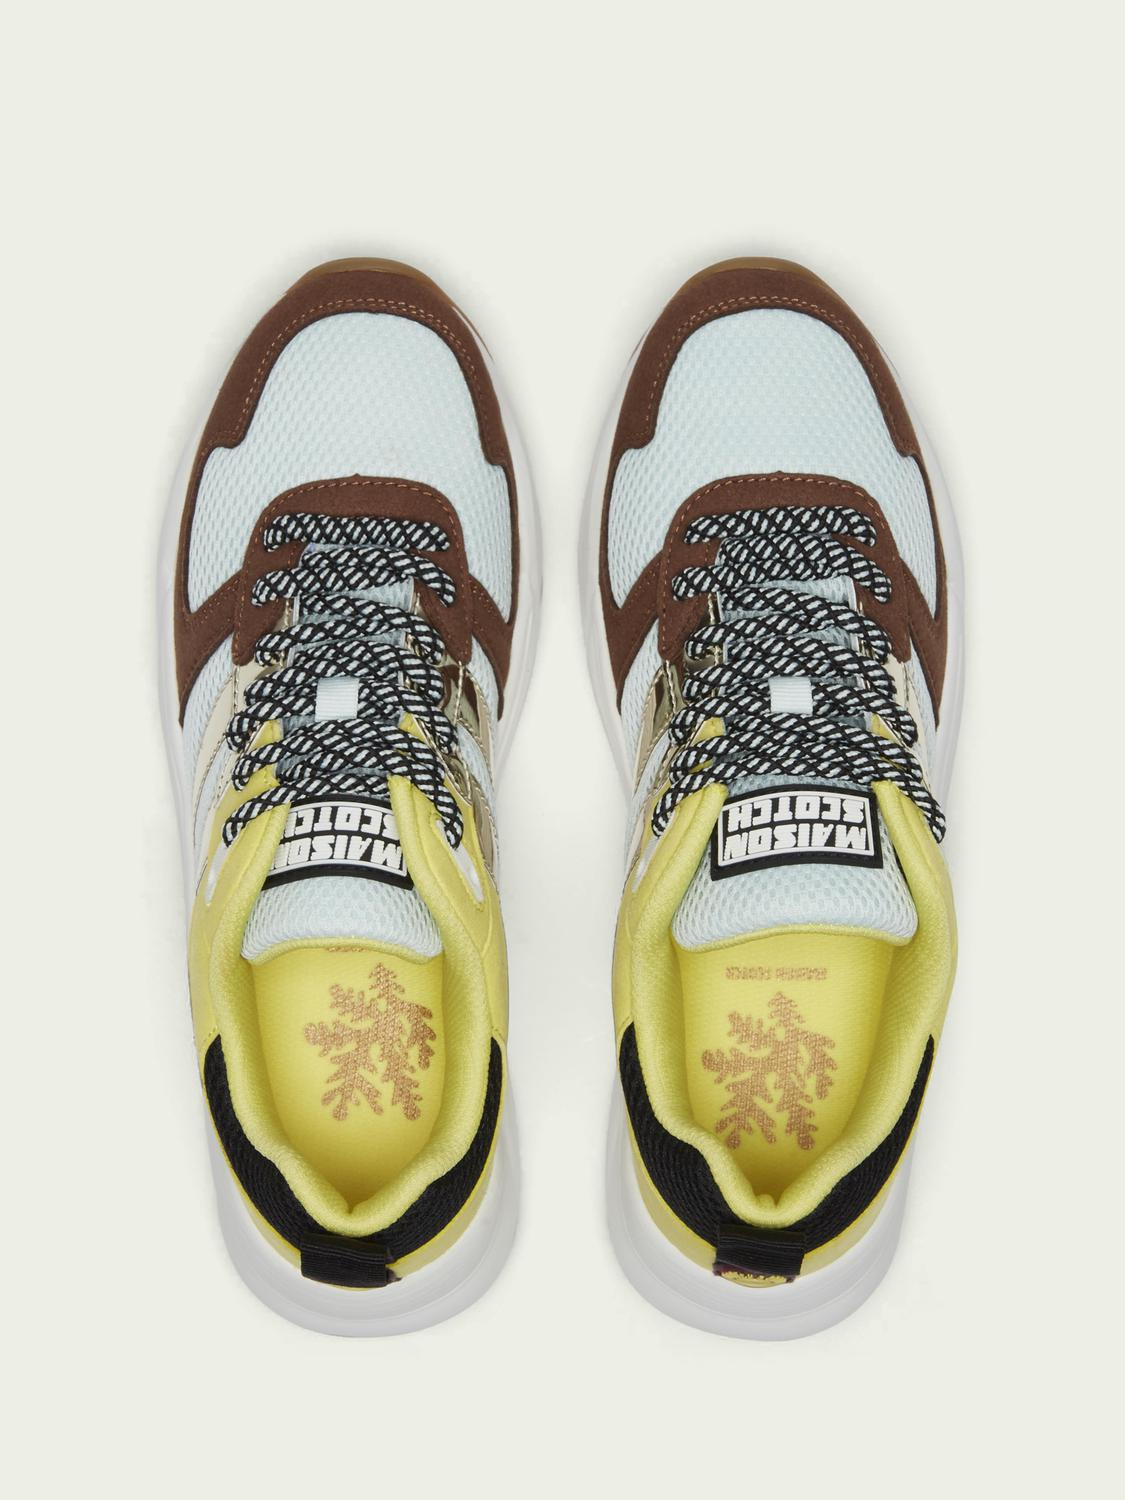 Celest lace-up sneakers 2